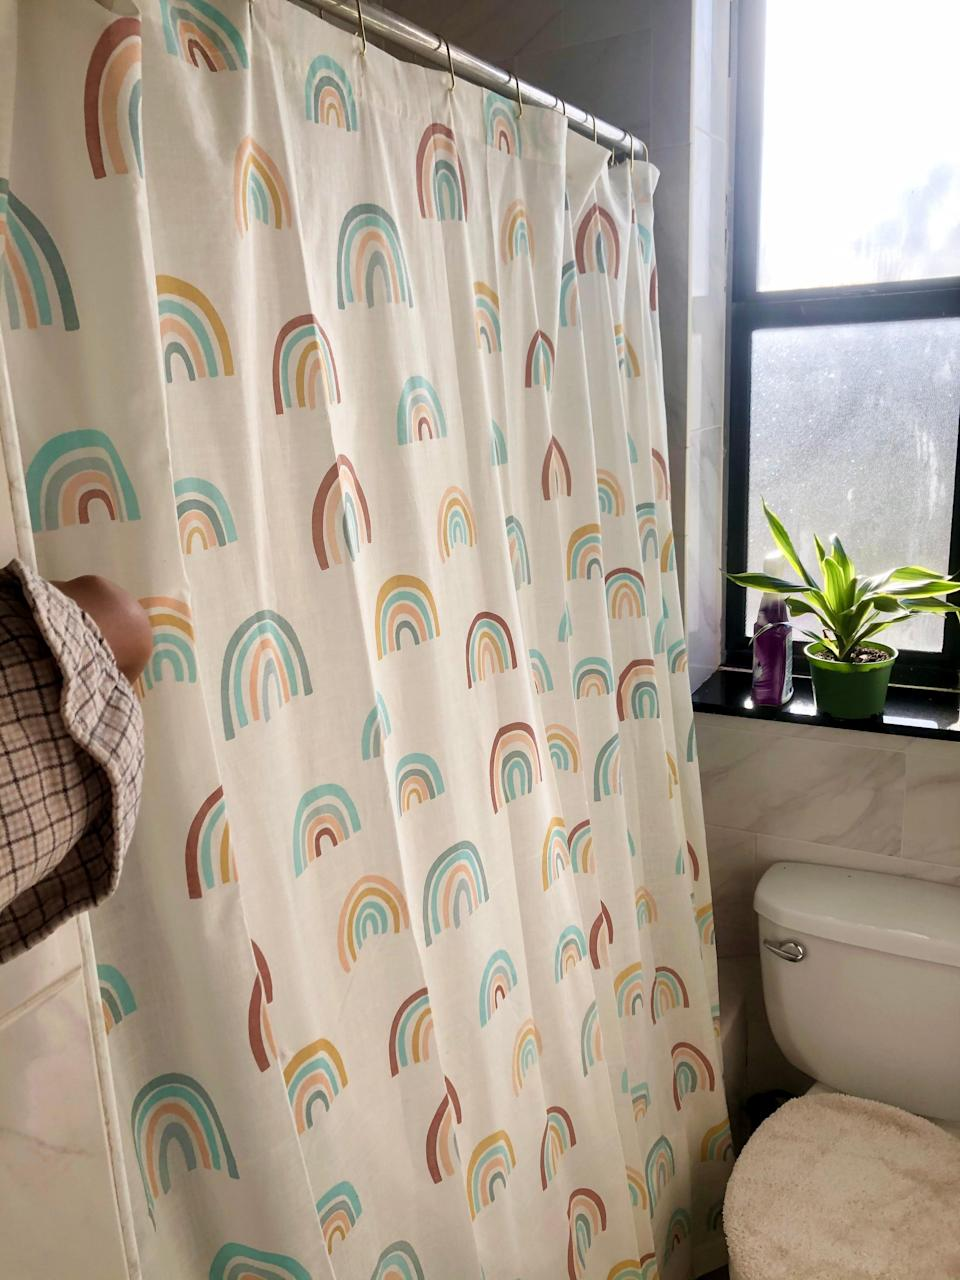 "<h2>World Market Muted Shower Curtain</h2><br>""Finding an aesthetically pleasing shower curtain that doesn't cost an exorbitant amount or feel like a piece of printer paper is oddly cumbersome. I snagged this one from World Market (for under $30!) and I'm obsessed with how it's covered in rainbows but has muted hues so it doesn't overwhelm my itty bitty bathroom. It has a cloth-like texture and is 100% cotton which makes it flow nicely over the tub. I definitely recommend getting a liner as well for the ultimate cute shower experience."" <em>– Alexandra Polk, Lifestyle Writer</em><br><br><em>Shop <strong><a href=""https://www.worldmarket.com/product/muted+rainbow+shower+curtain.do"" rel=""nofollow noopener"" target=""_blank"" data-ylk=""slk:World Market"" class=""link rapid-noclick-resp"">World Market</a></strong></em><br><br><strong>Cost Plus World Market</strong> Muted Rainbow Shower Curtain, $, available at <a href=""https://go.skimresources.com/?id=30283X879131&url=https%3A%2F%2Ffave.co%2F3umJe0E"" rel=""nofollow noopener"" target=""_blank"" data-ylk=""slk:Cost Plus World Market"" class=""link rapid-noclick-resp"">Cost Plus World Market</a>"